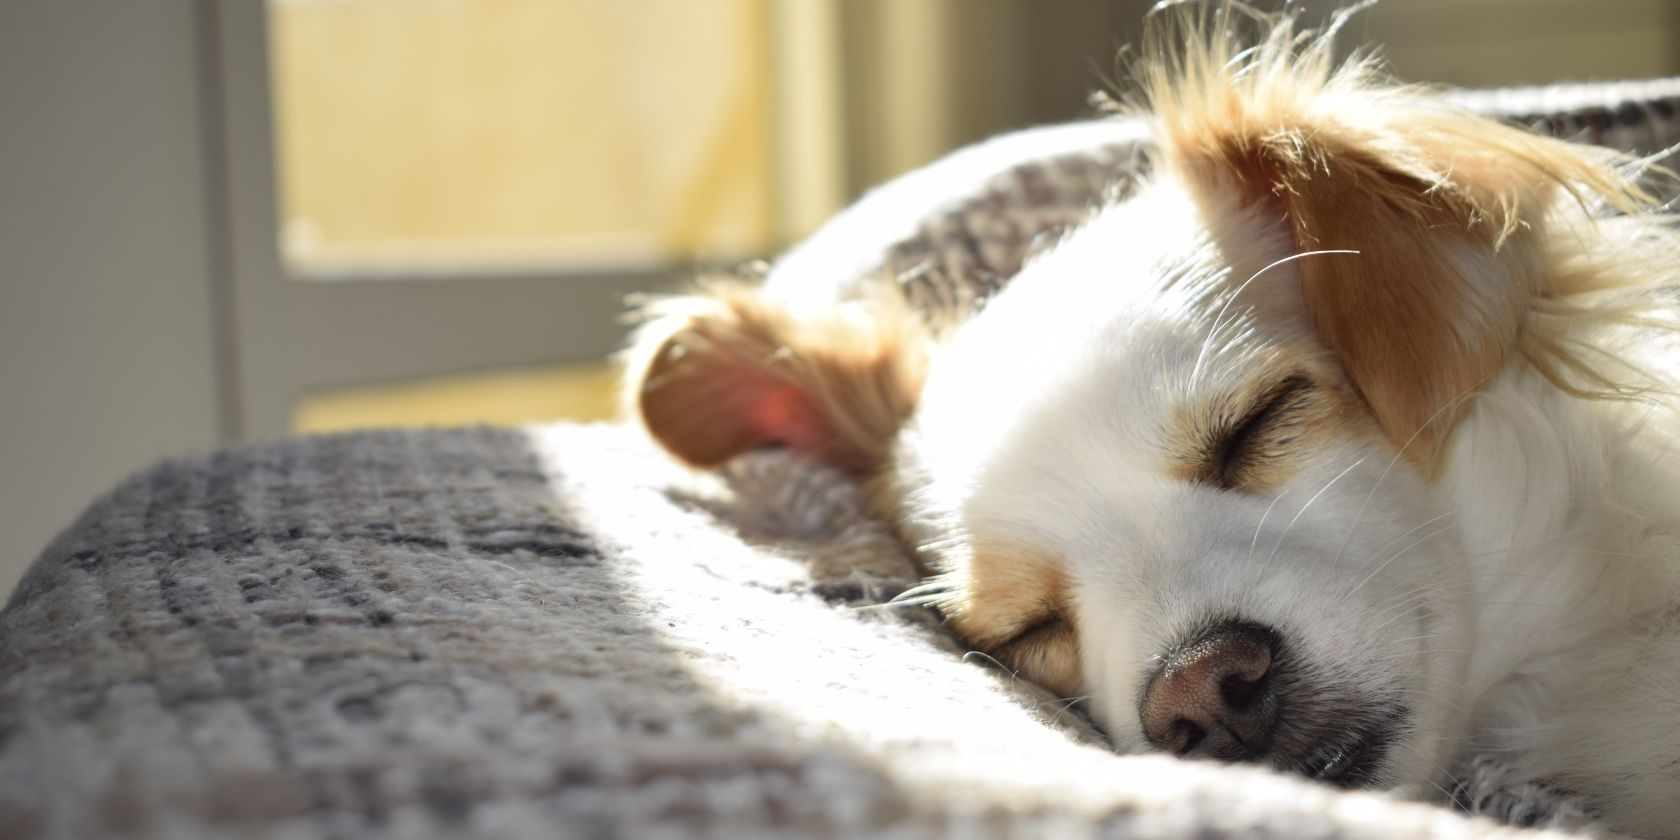 How to Get Treatment for Your Sick Pet With the FirstVet Video Vet Service